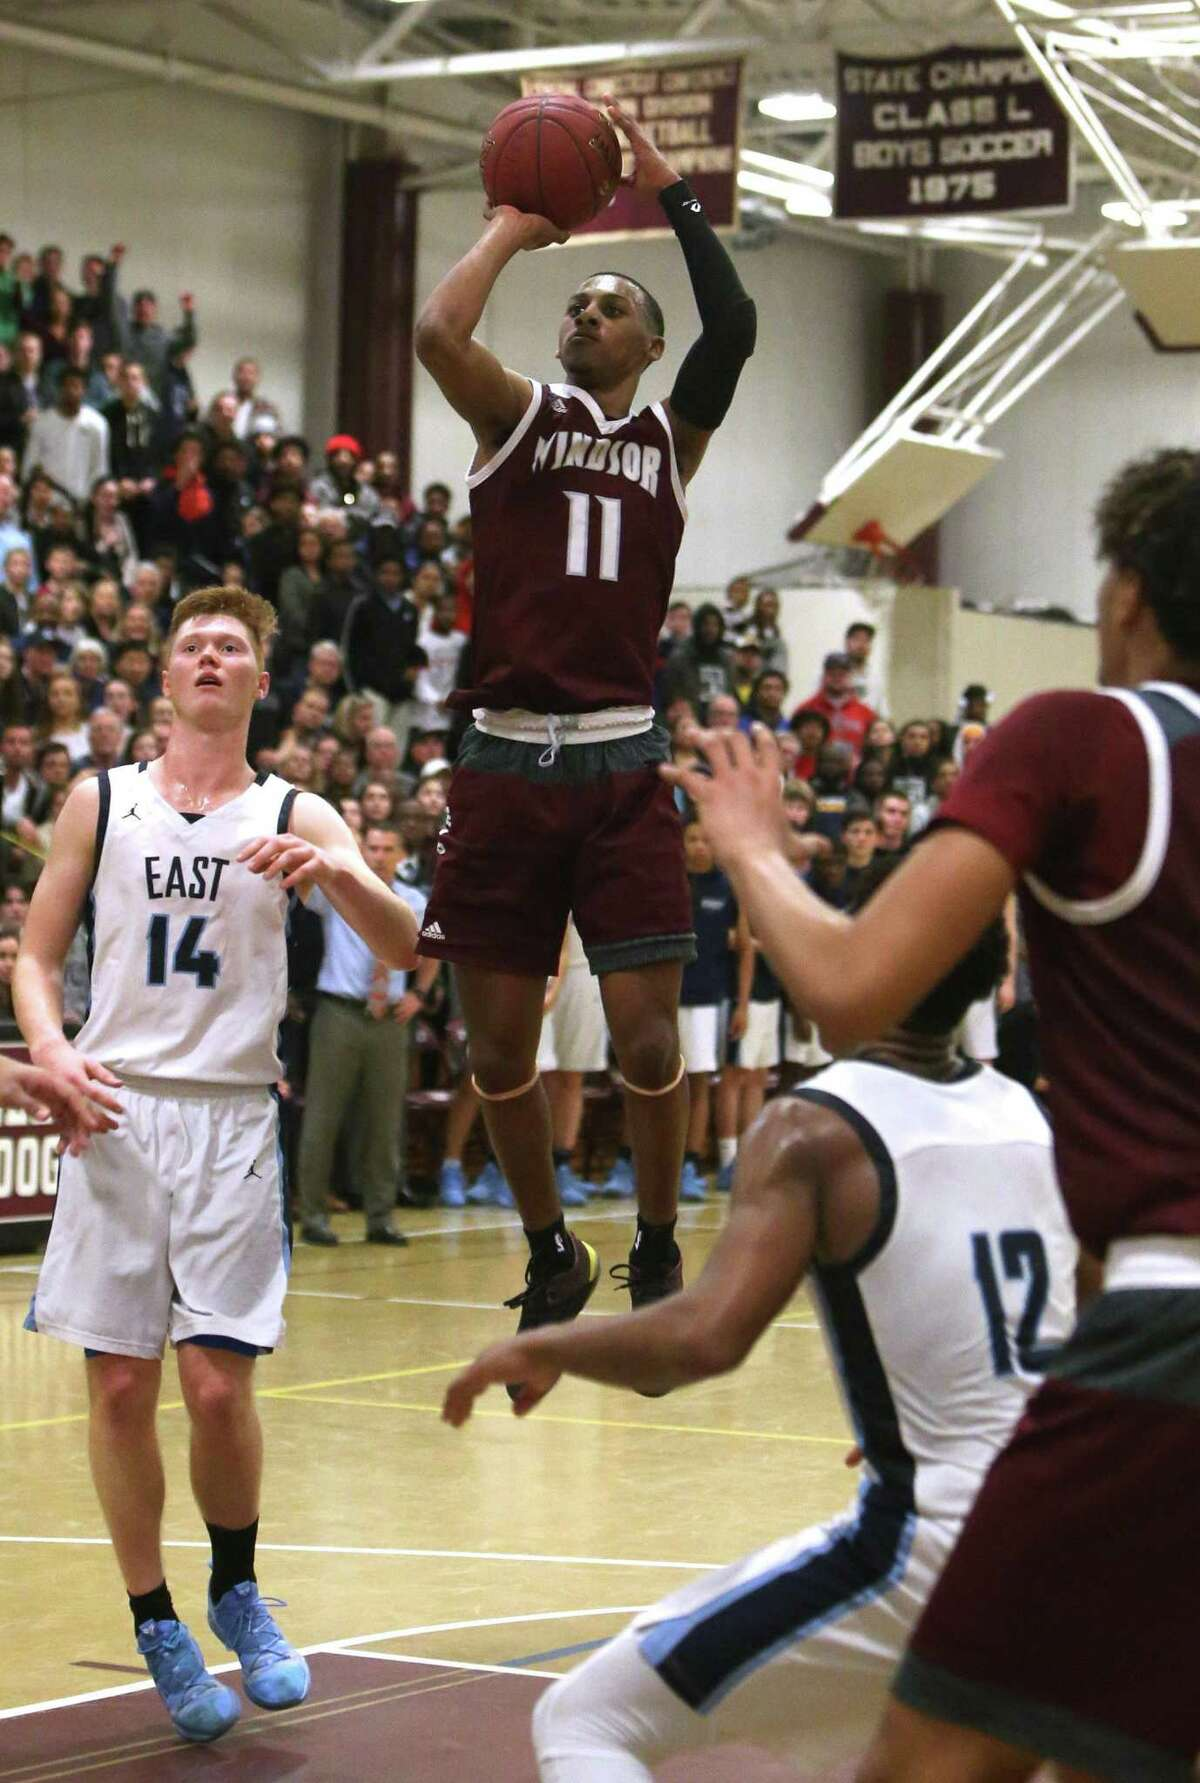 Windsor's Amir Spears goes up for a shot during the Central Connecticut Conference tournament final against East Catholic on Feb. 28. Windsor won 87-85.